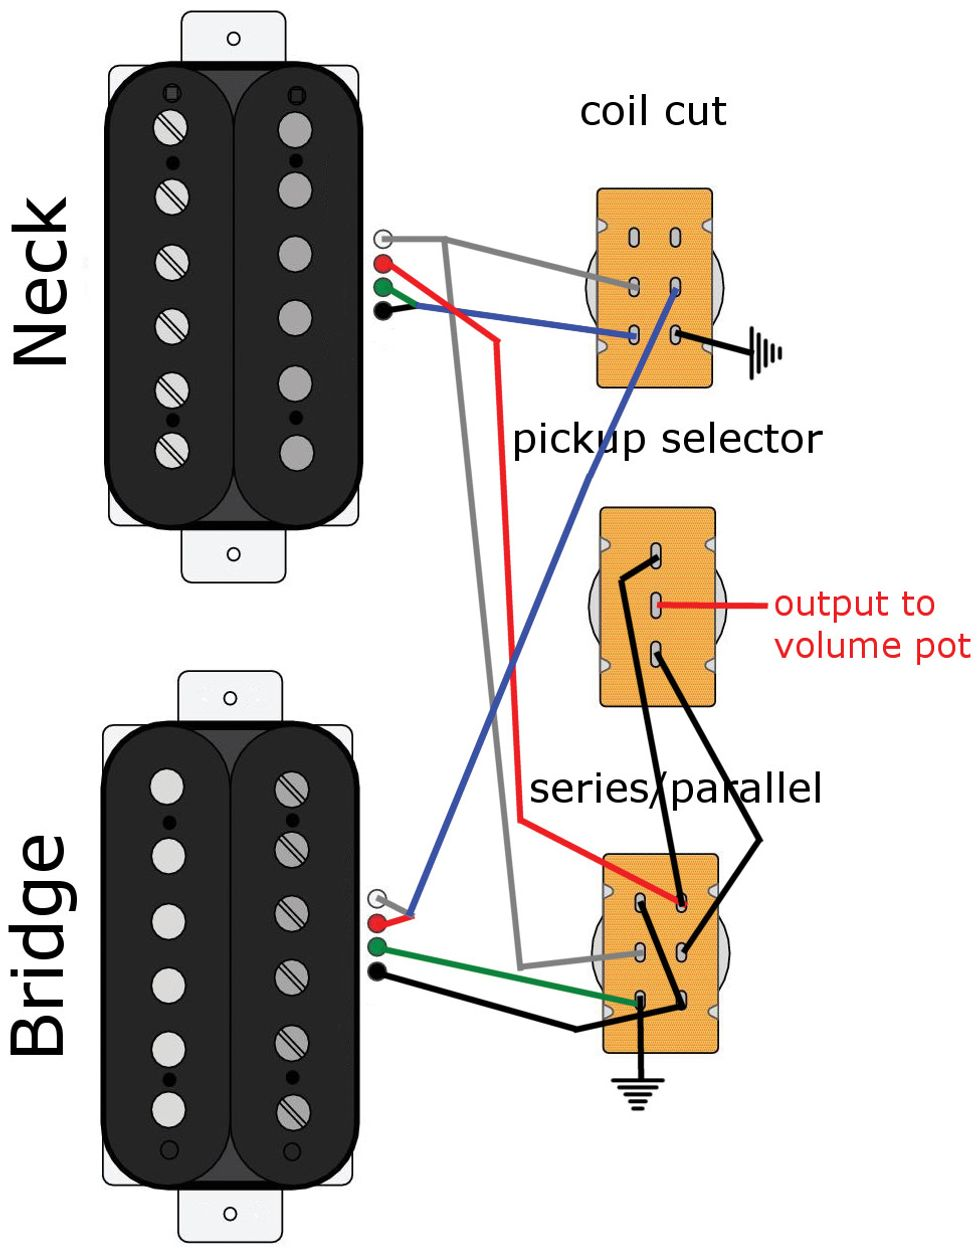 ultra wiring diagram mod garage ultra flexible hh wiring premier guitar strat ultra wiring diagram mod garage ultra flexible hh wiring